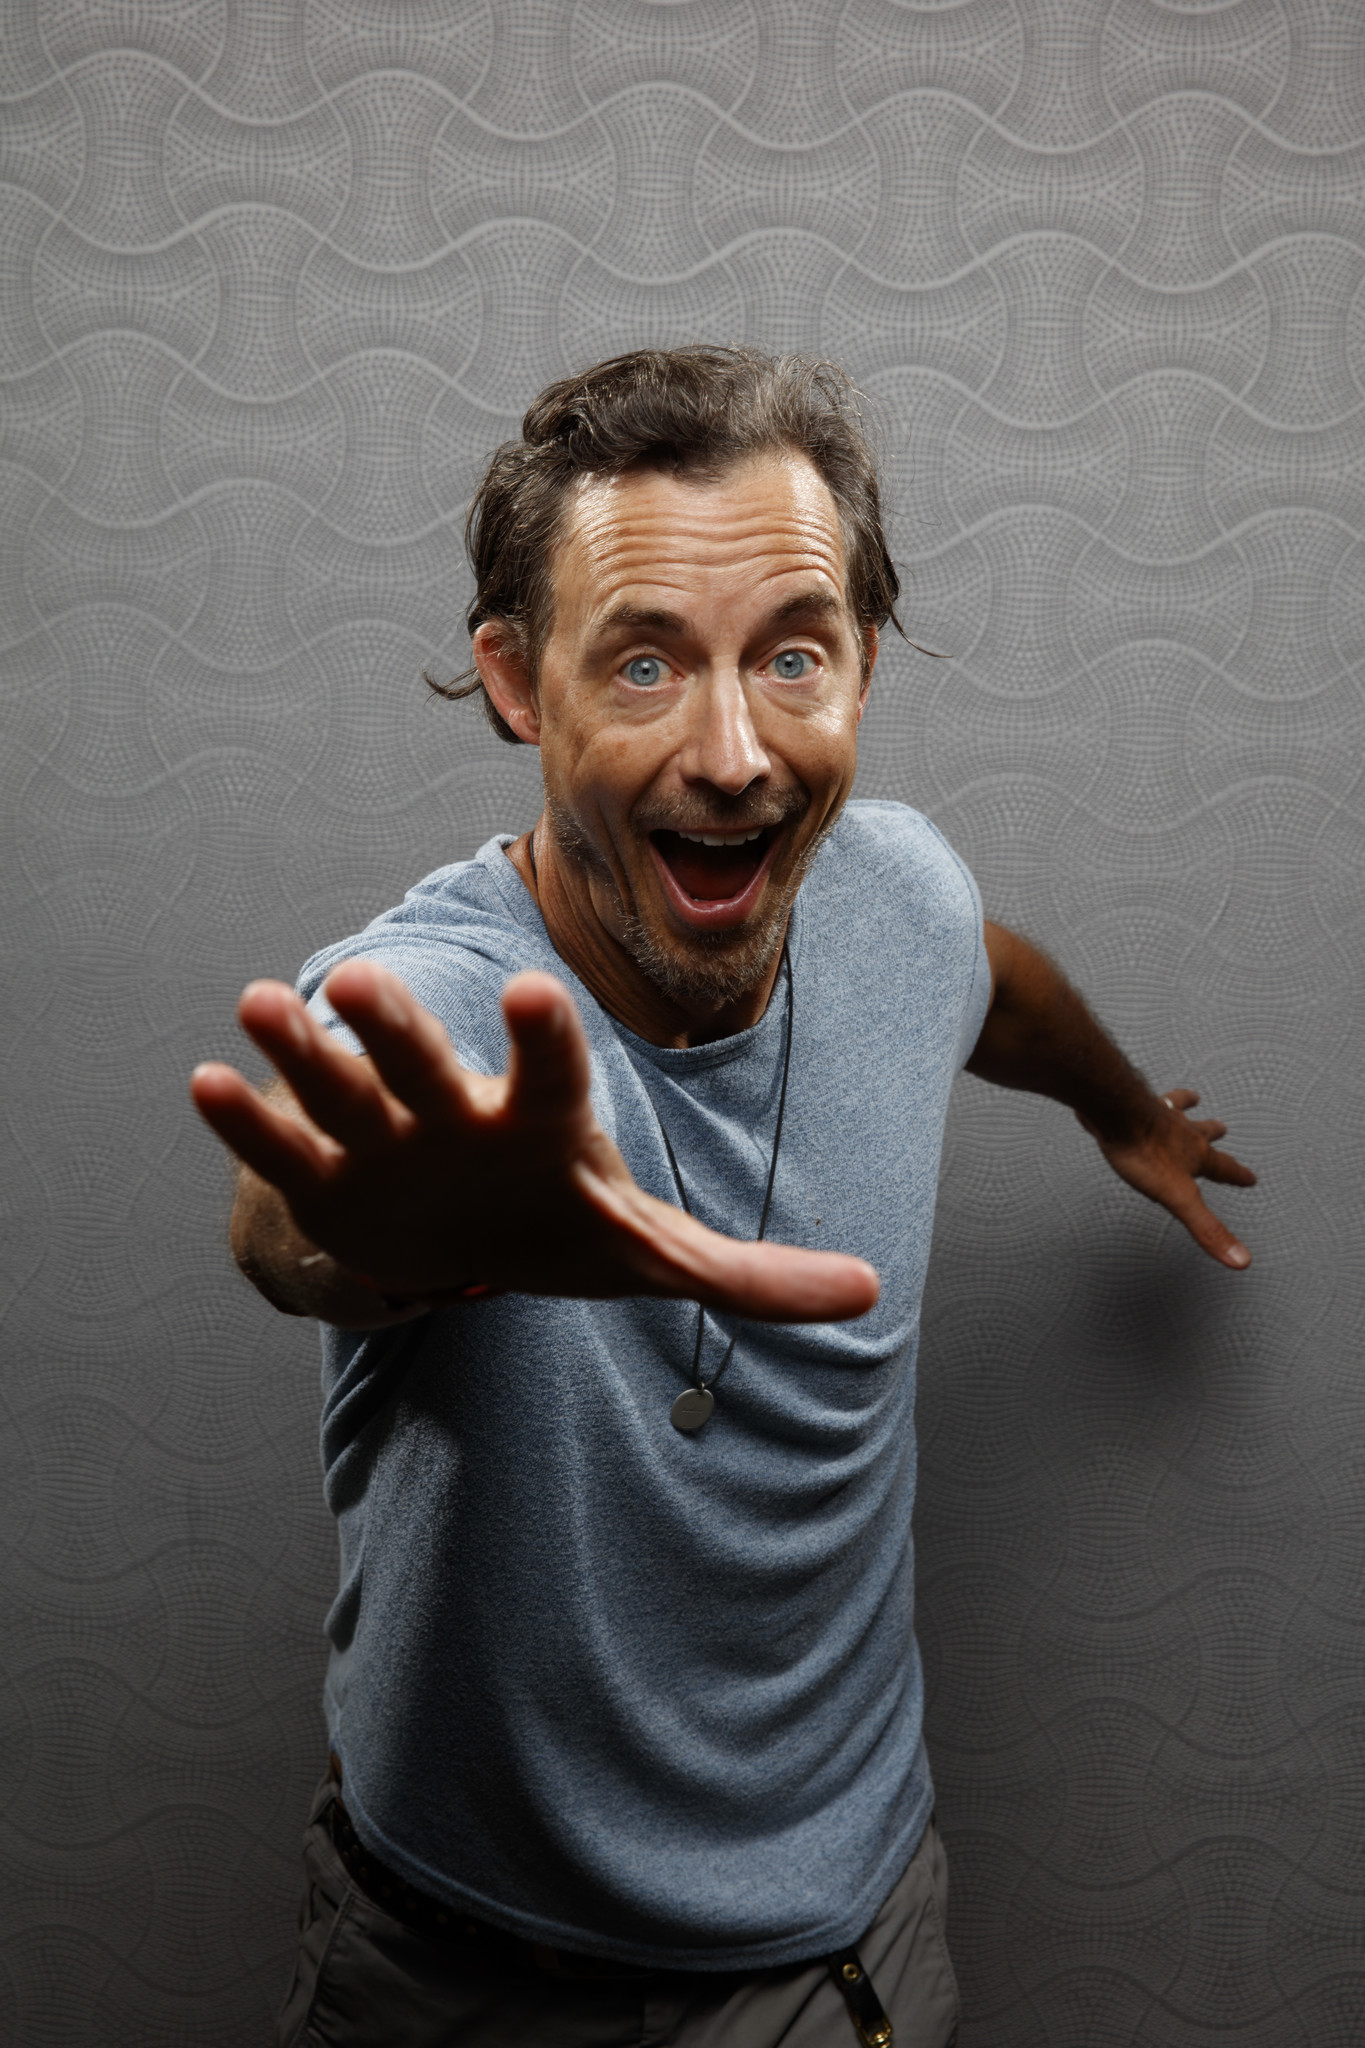 """SAN DIEGO, CALIF. -- JULY 21, 2018-- Tom Cavanagh from the television series """"The Flash,"""" photograph"""